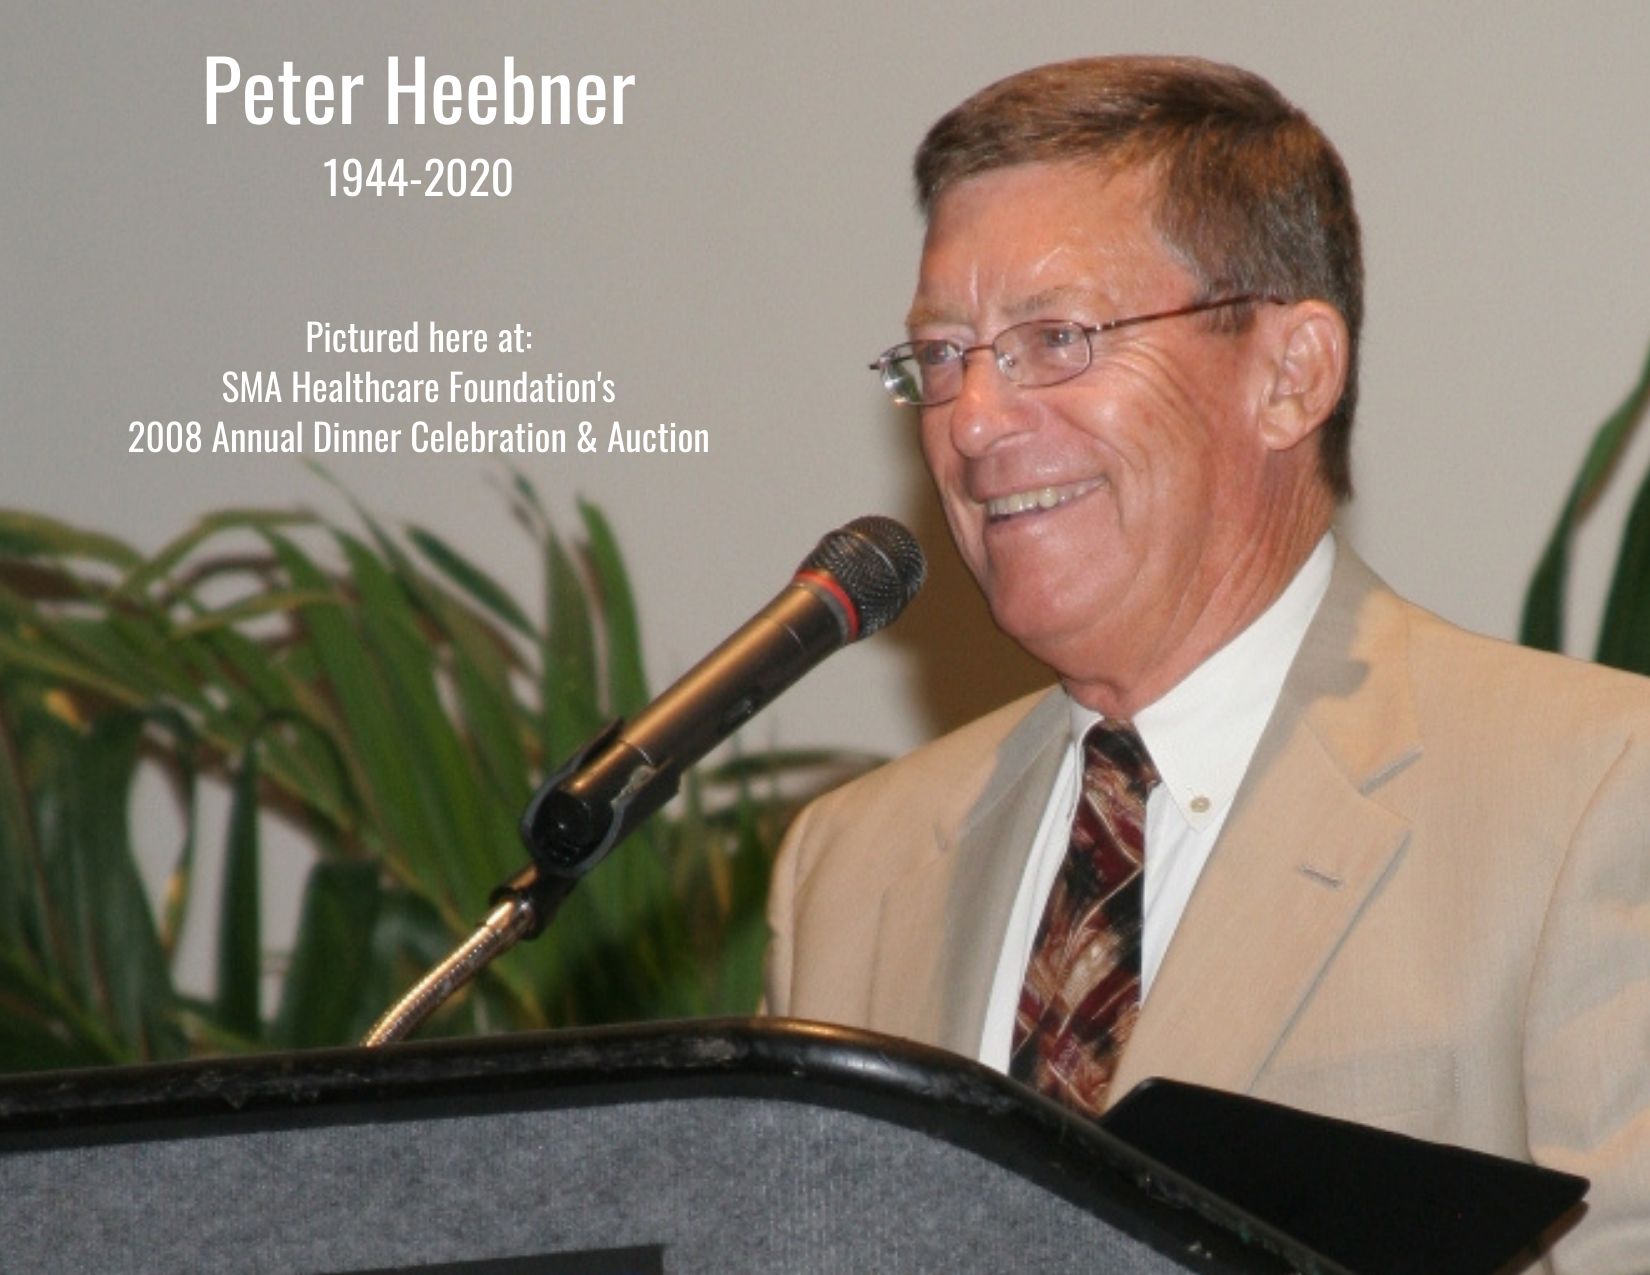 SMA Healthcare Foundation Receives $25,000 Lead Matching Gift in Memory of Peter Heebner